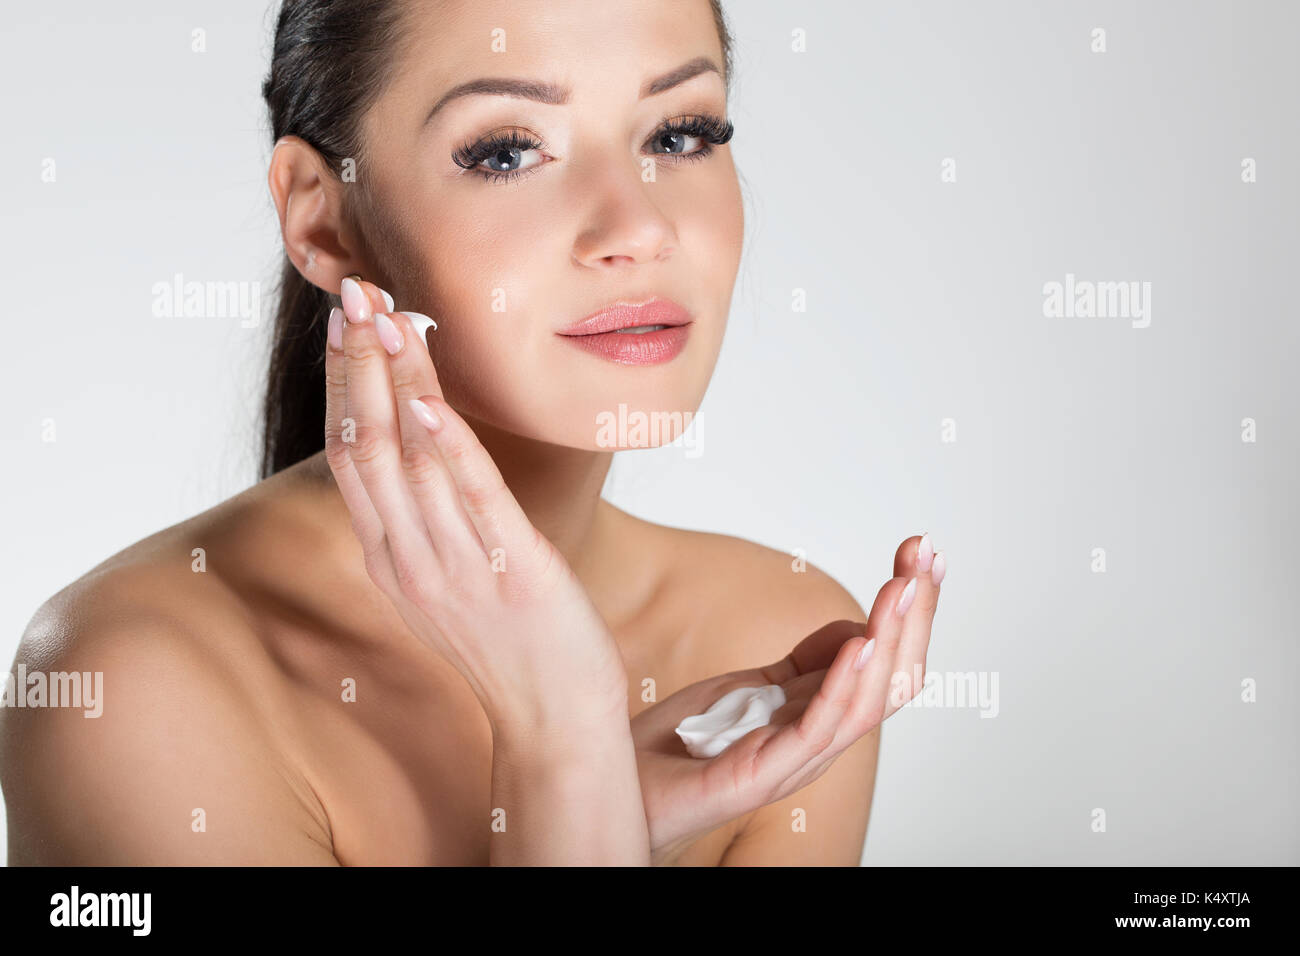 Portrait of pretty smiling woman applying cream on face - Stock Image